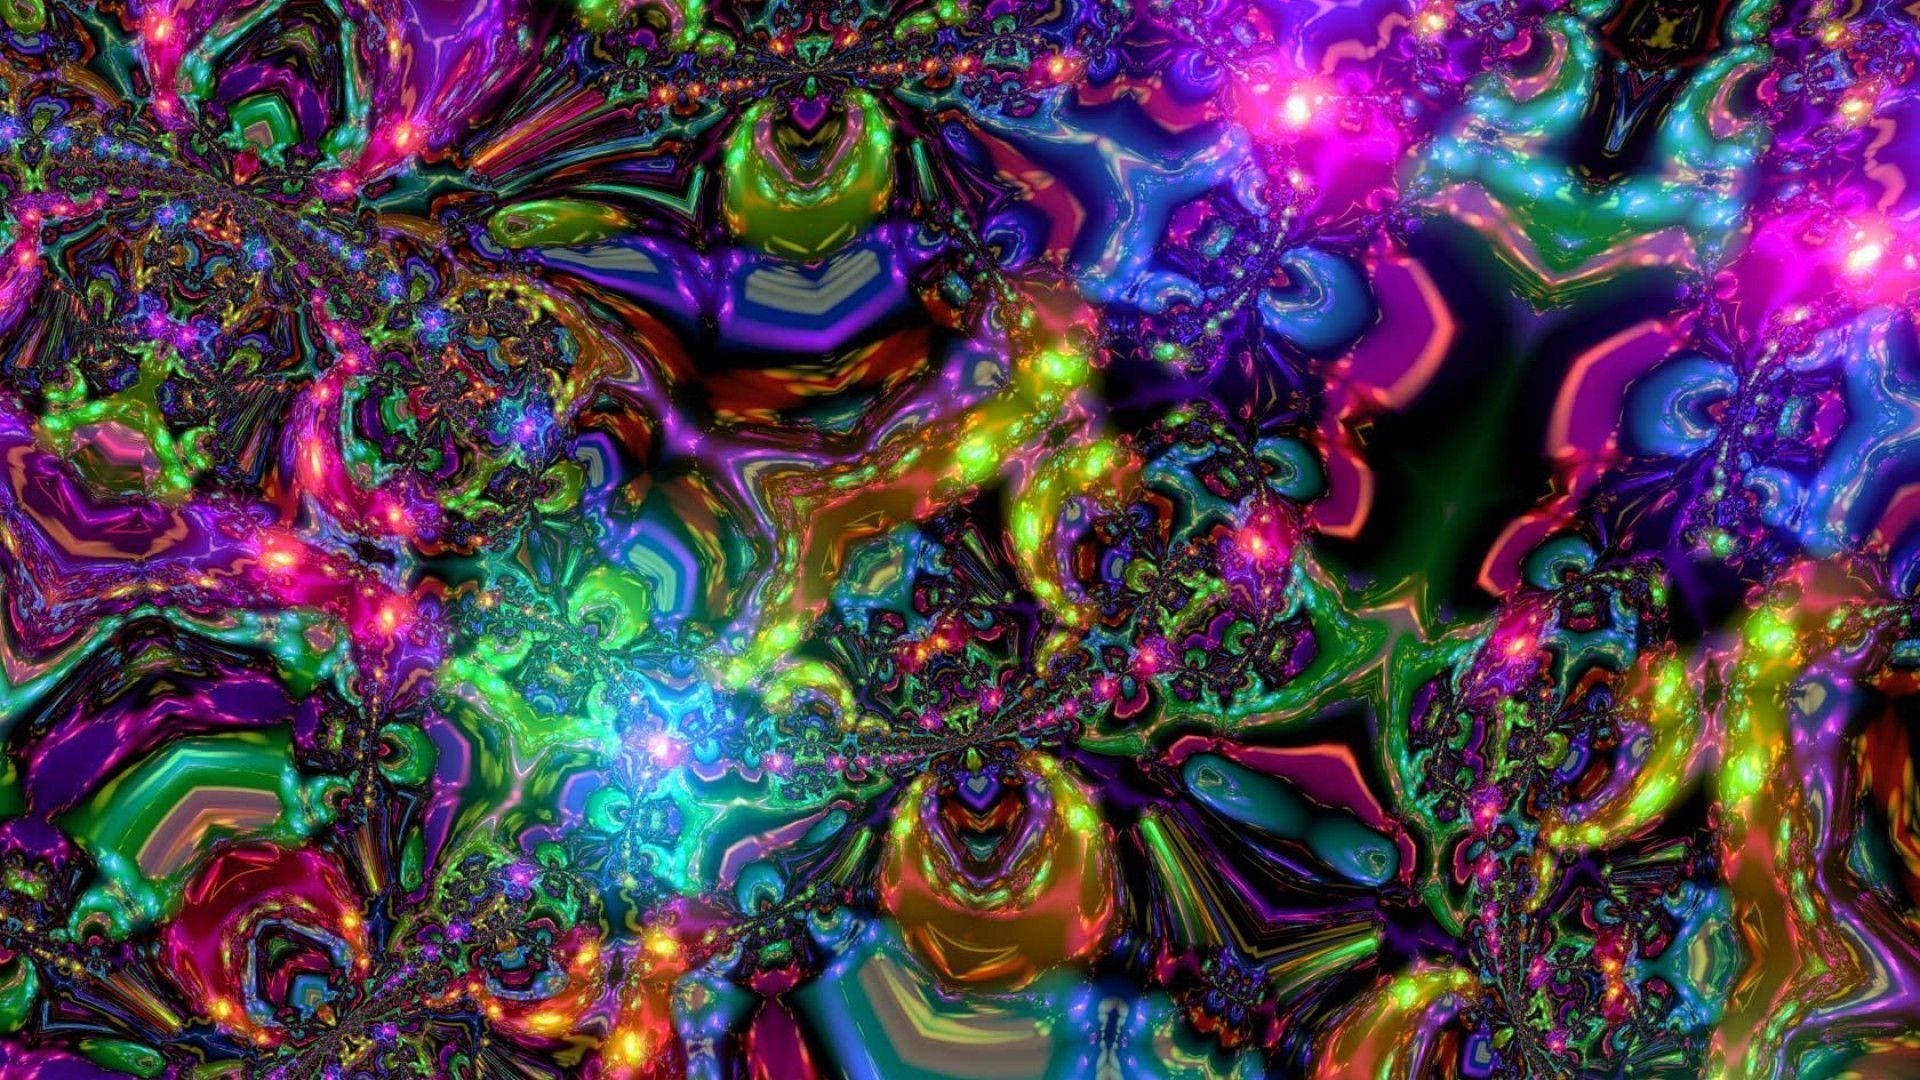 1920x1080 Wallpapers For > Psychedelic Art Wallpapers Hd